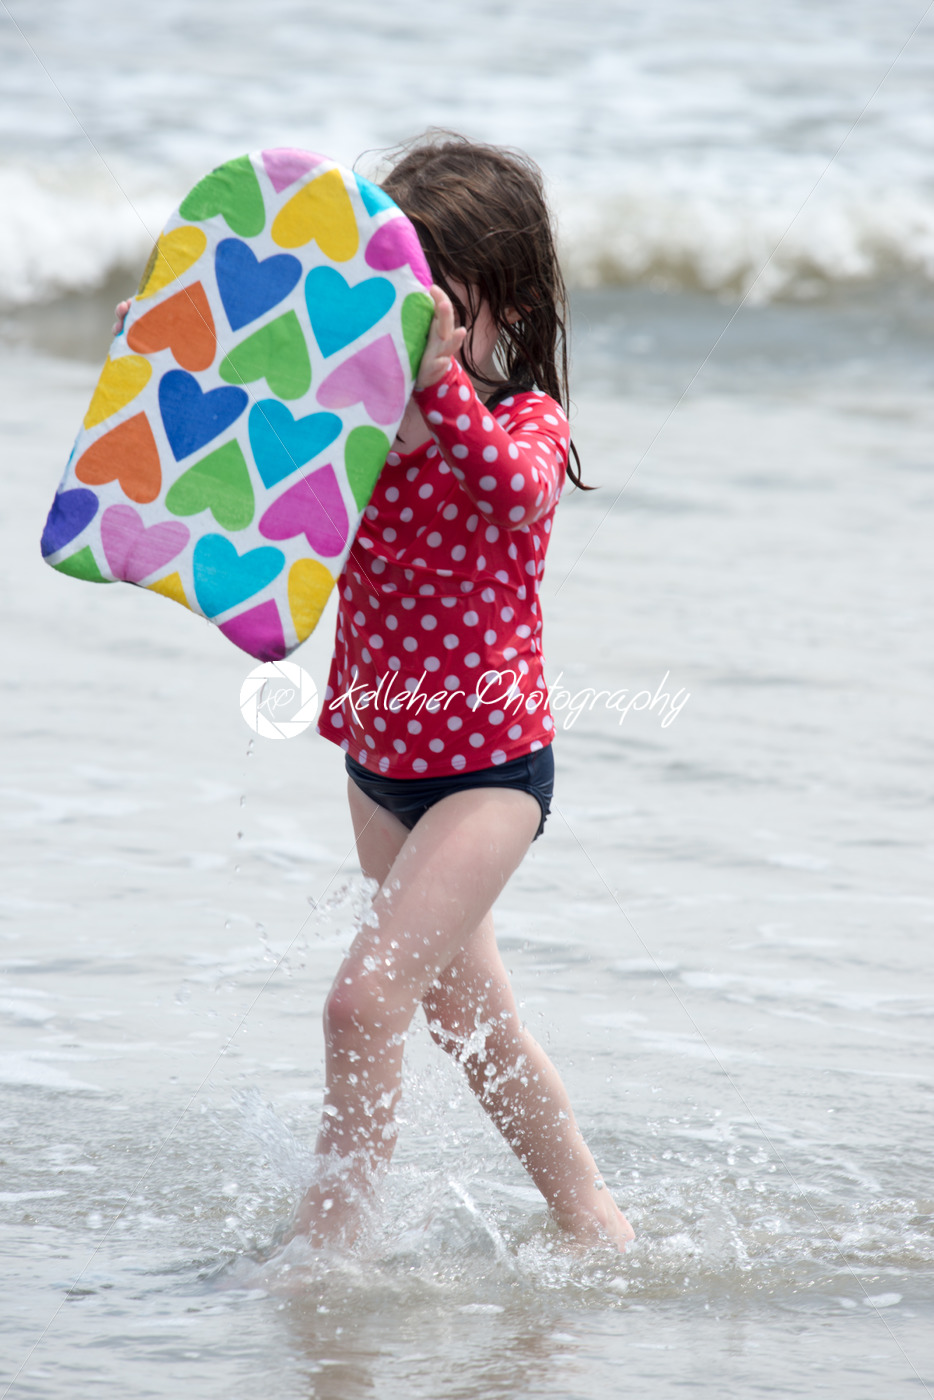 Girl coming out of the ocean waves with a boogy board - Kelleher Photography Store